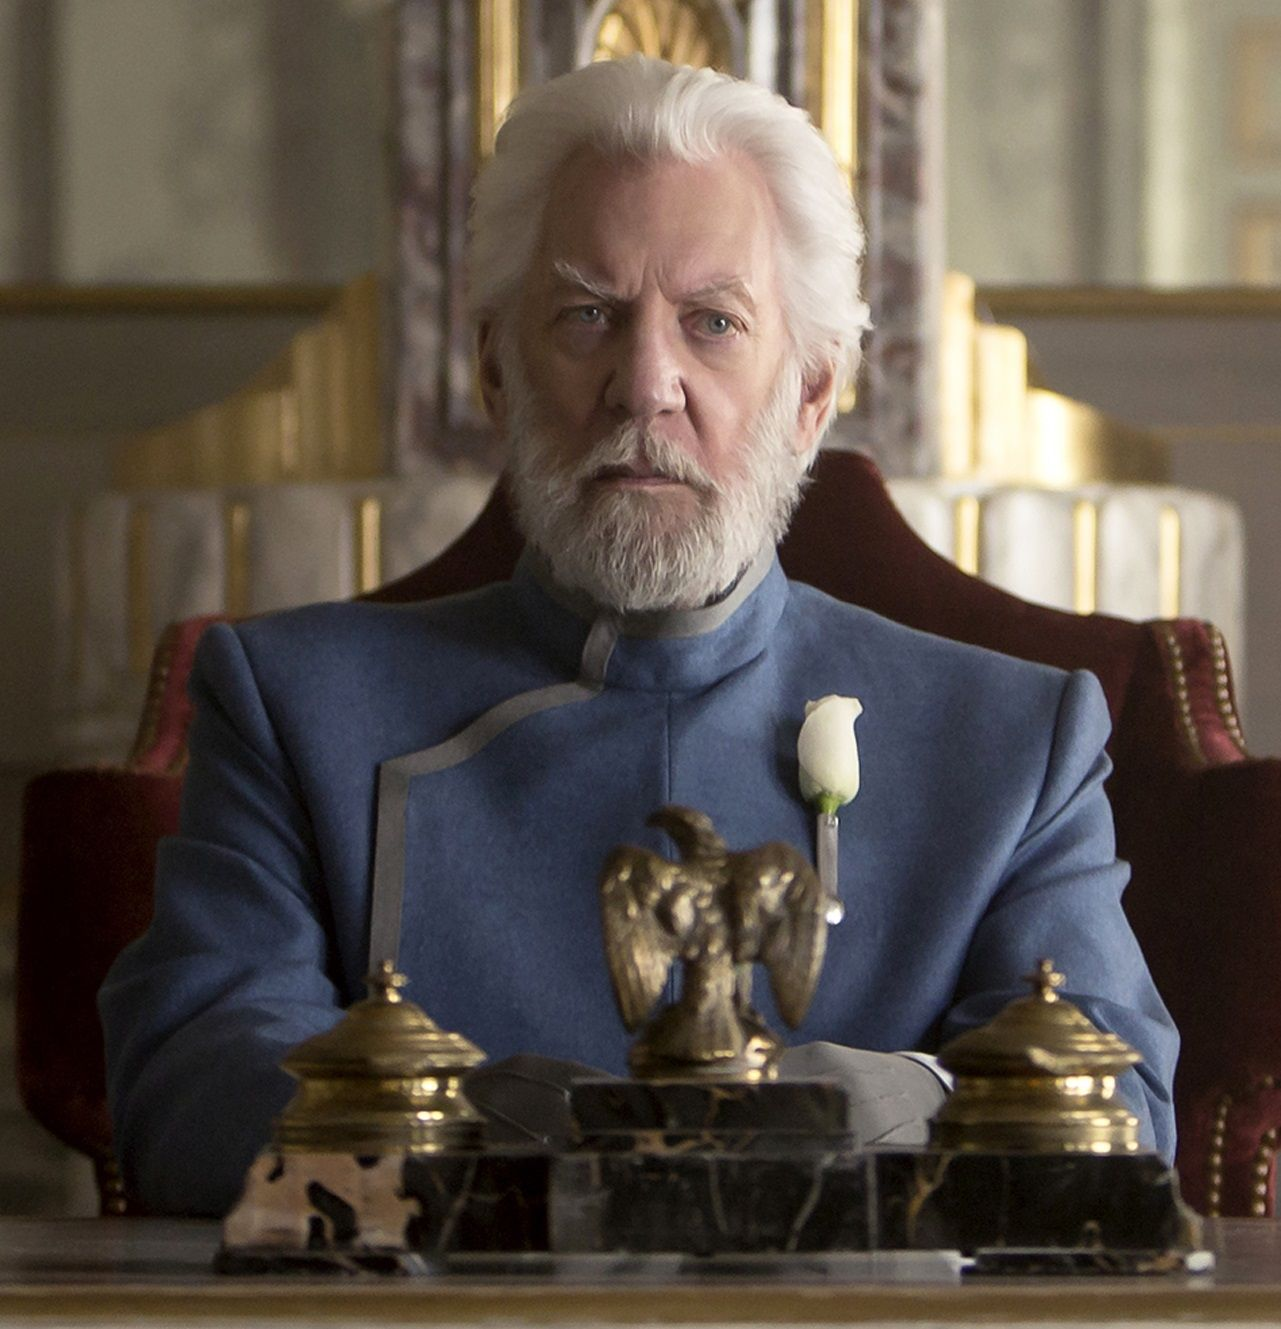 Coriolanus Snow, The Hunger Games | Hunger games ...